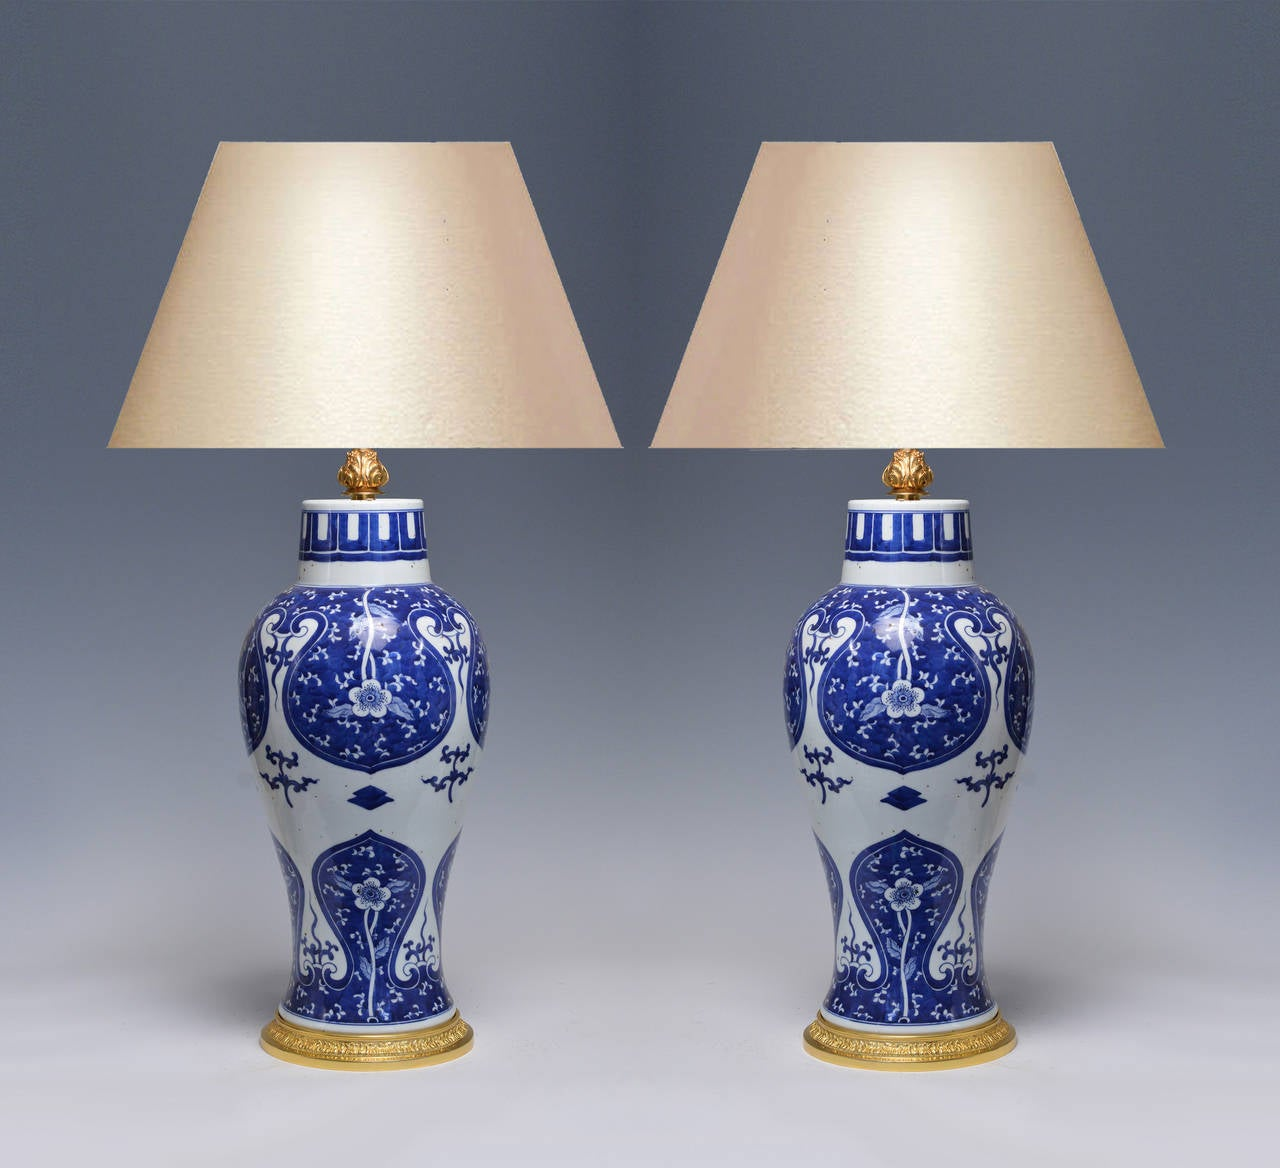 pair of blue and white porcelain lamps for sale at 1stdibs. Black Bedroom Furniture Sets. Home Design Ideas